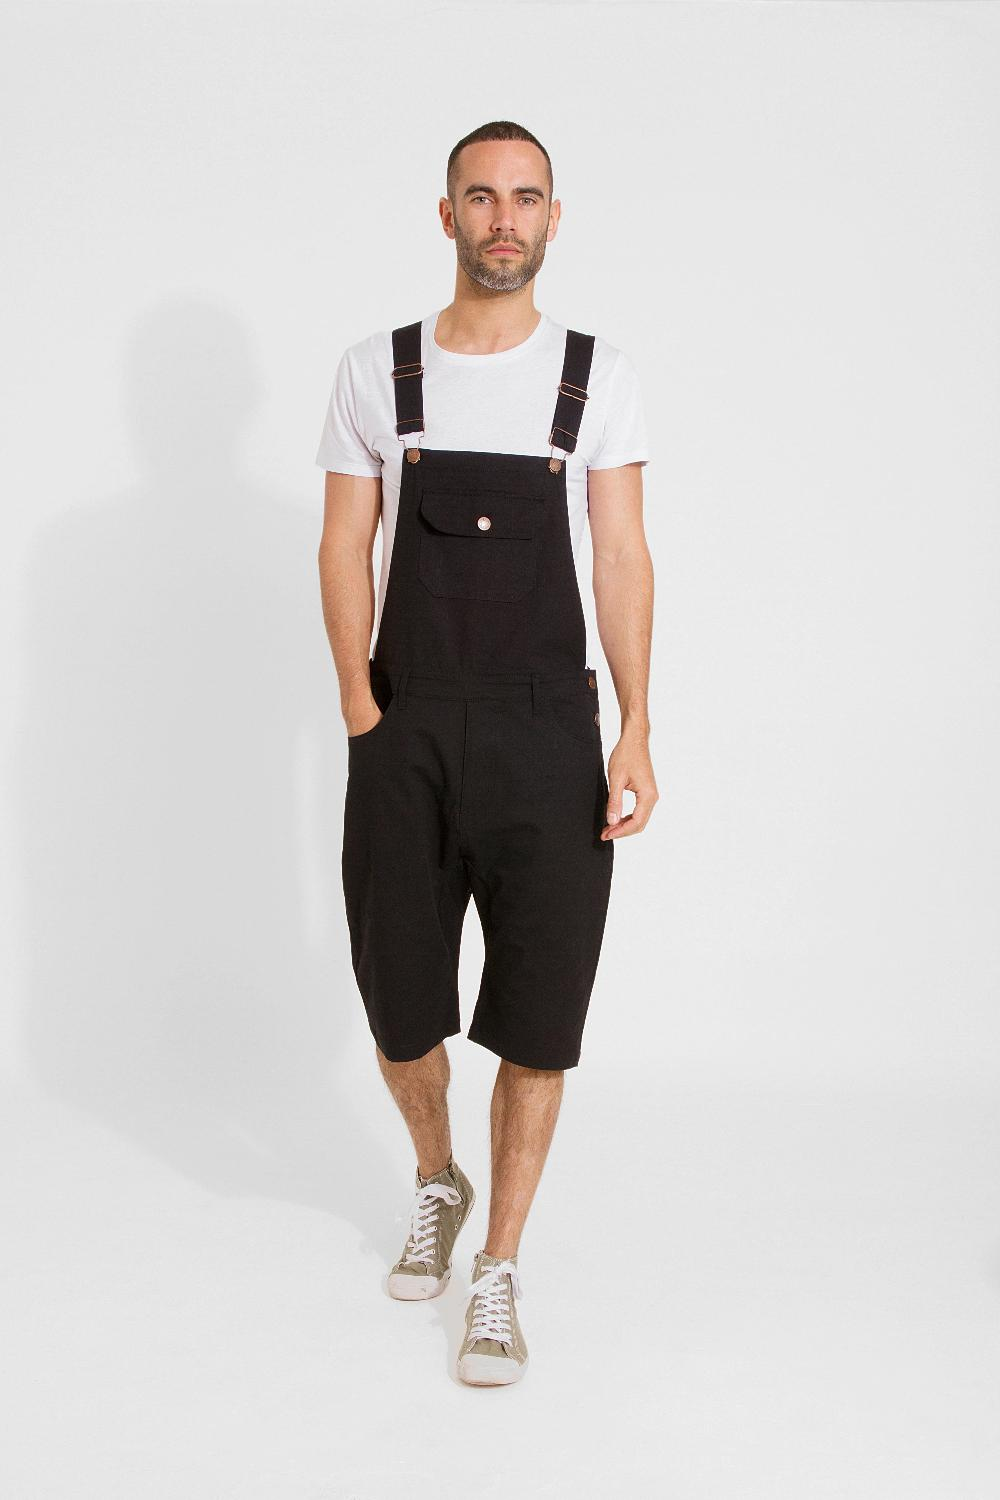 Full frontal walking pose wearing slim-fit, dark cotton bib-overall shorts from Dungarees Online.